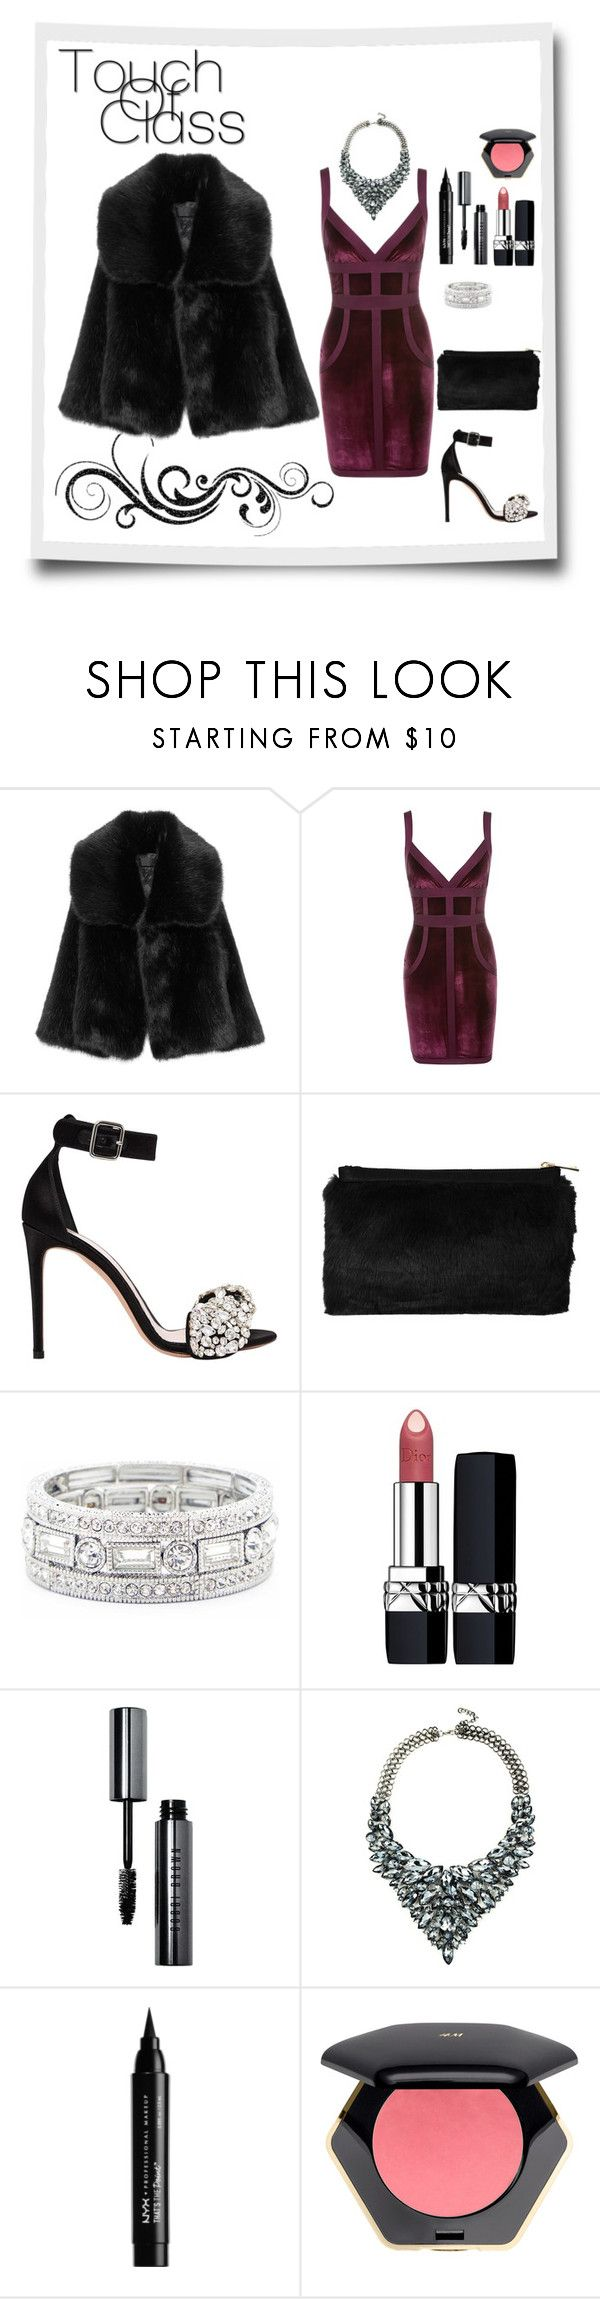 """Faux Fur Fiesta"" by triplee2017 ❤ liked on Polyvore featuring Alexander McQueen, Miss Selfridge, Sole Society, Christian Dior, Bobbi Brown Cosmetics, Eye Candy and NYX"